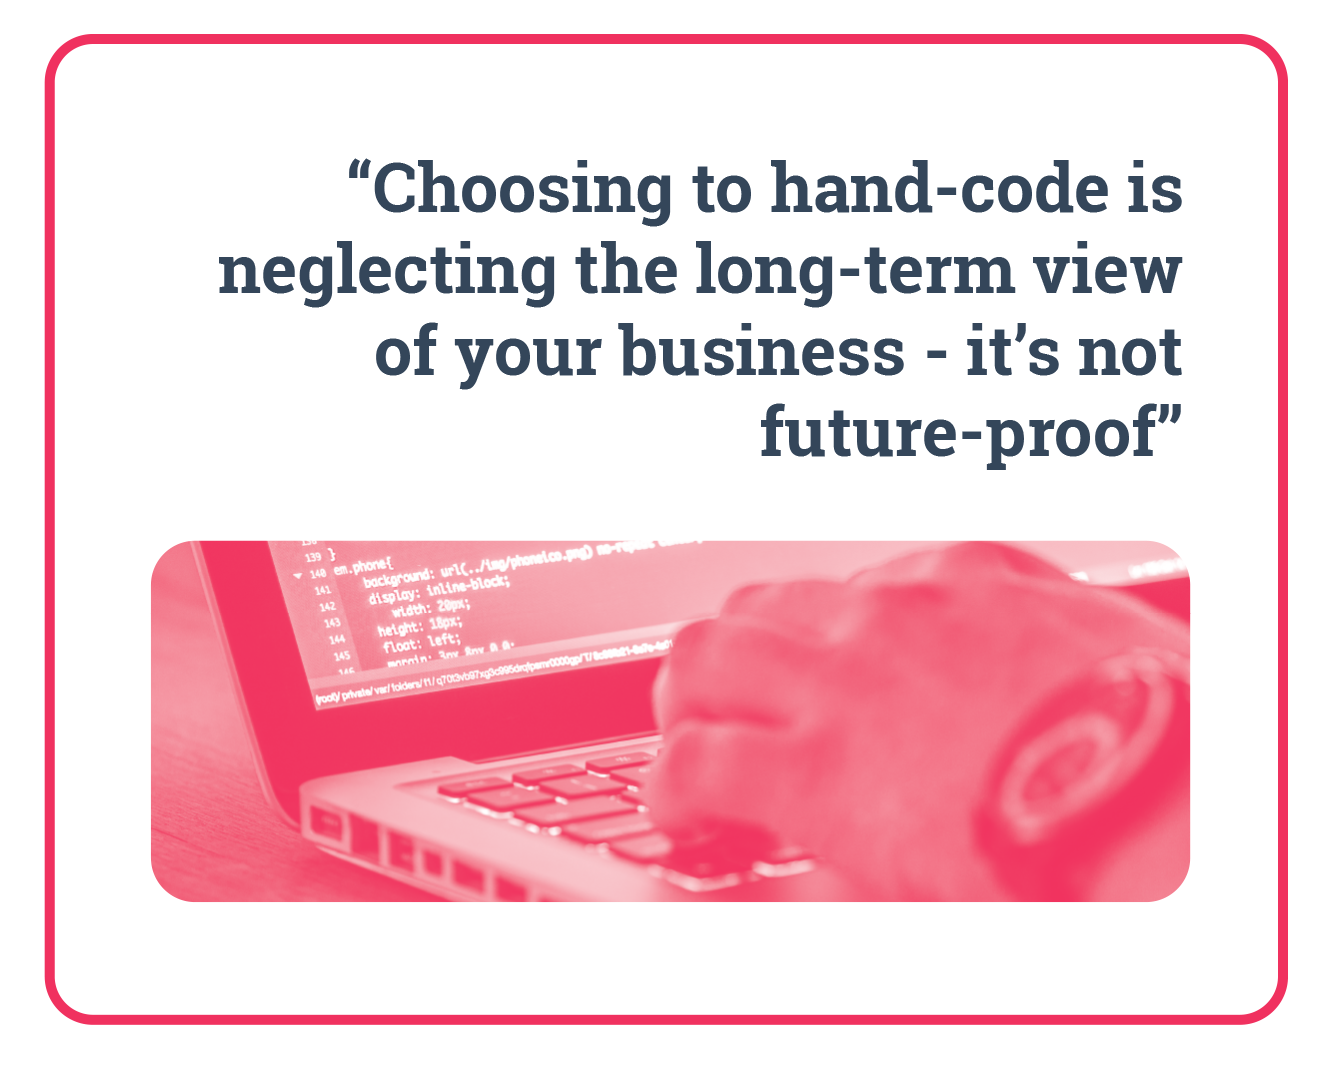 """Quote: """"Choosing hand-code is neglecting the long-term view of your business - it's not future-proof."""""""